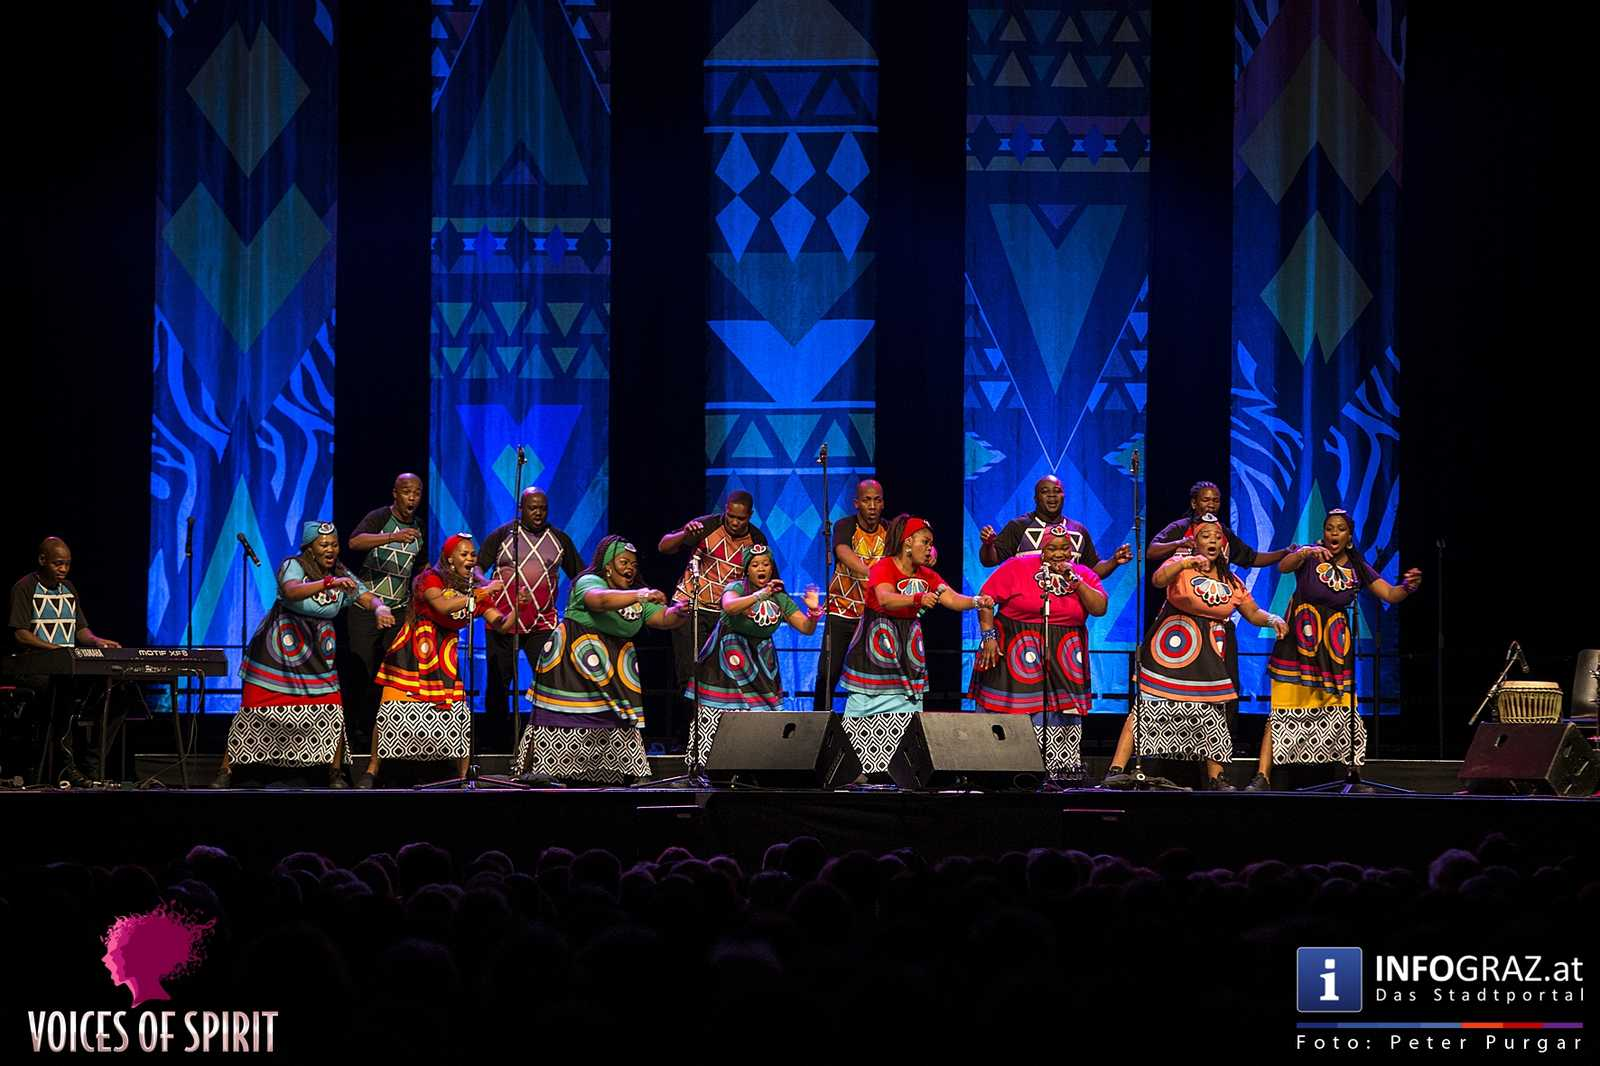 soweto gospel choir internationales chorfestival statdthalle graz voices of spirit eroeffnung festivals 2016 046